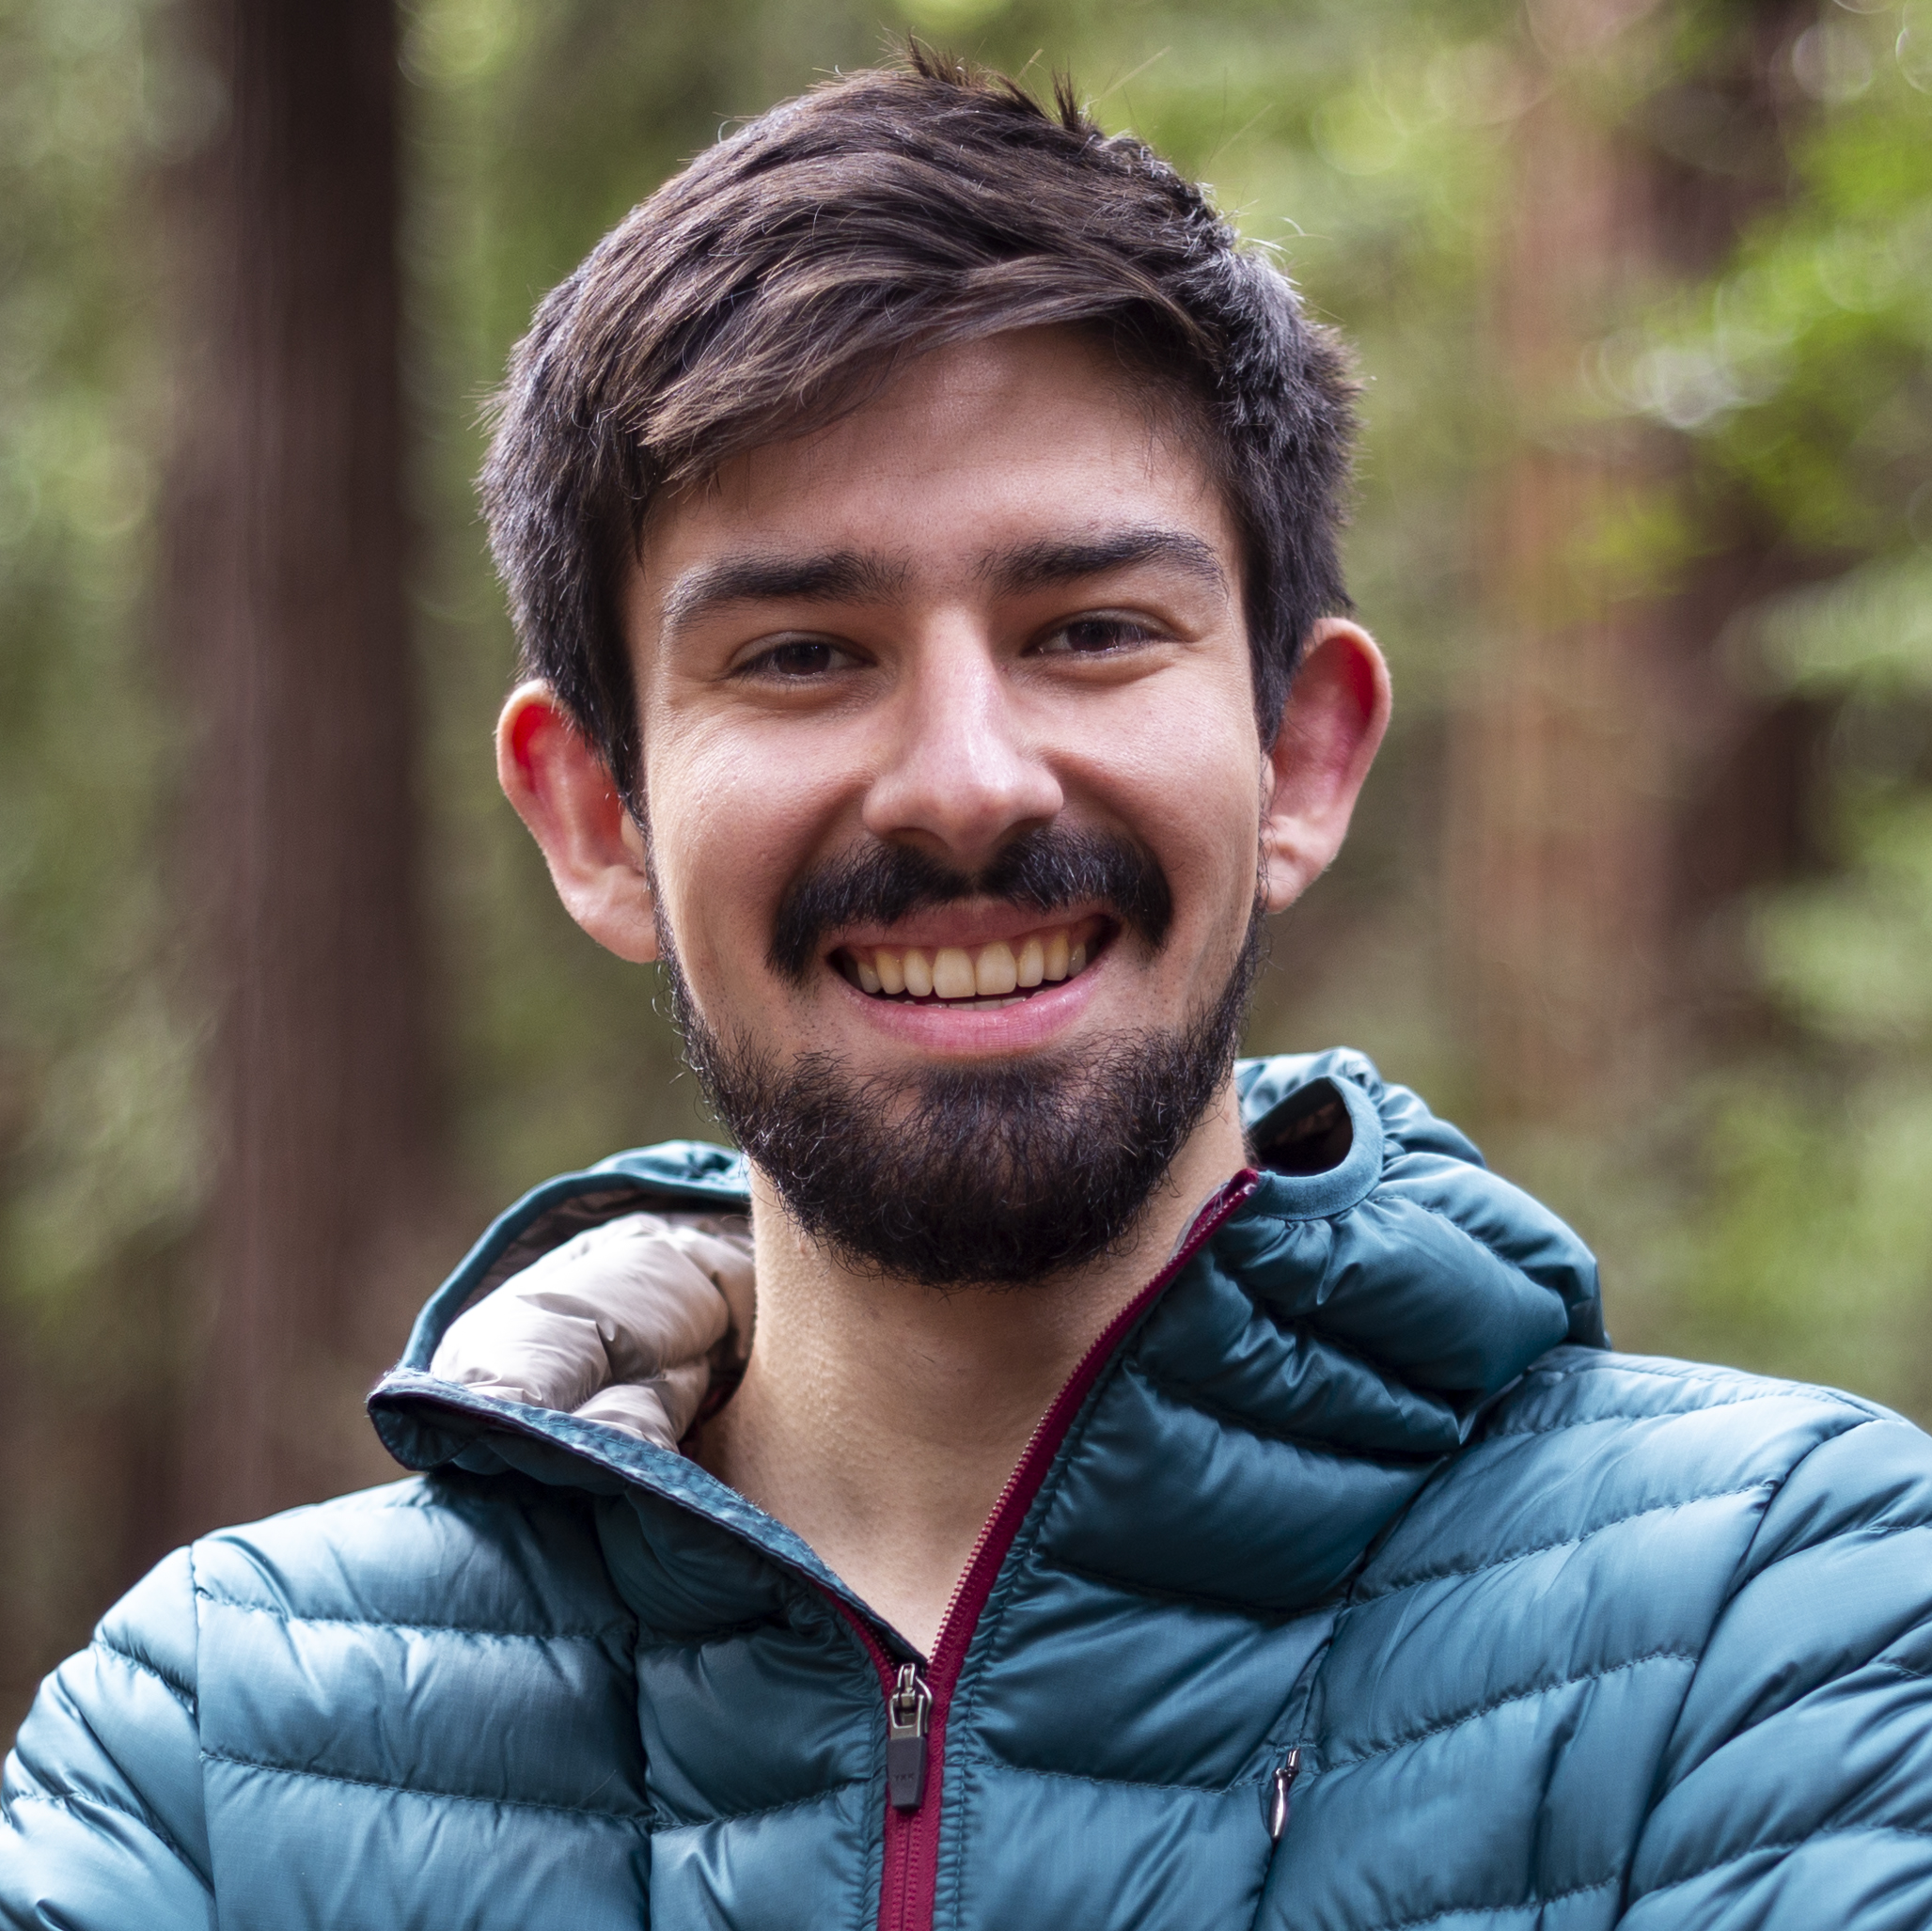 Martin Froger   Video Producer  I am a firm believer in the power of photo and film to act as vehicles for social change, and I love Listen for a Change for bringing people together around that. I believe that everyone has a story to tell, and that their story has the potential to change someone else's life. As the son of two immigrants, my multi-ethnic background drives my everyday life and is the lens through which I see and understand the world.